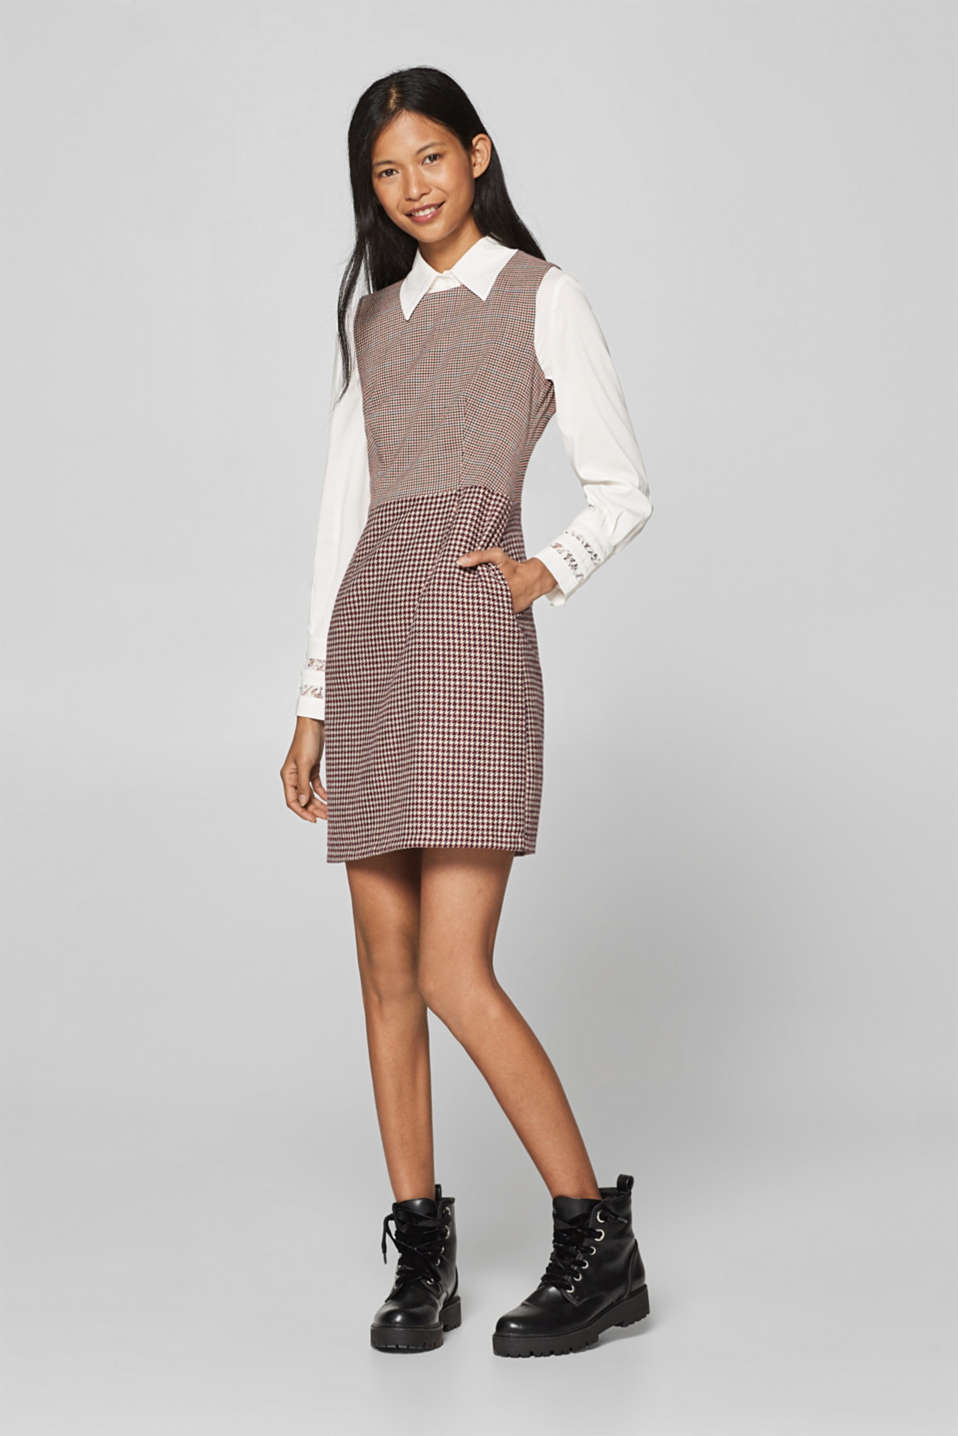 Esprit - Stretch dress with two different houndstooth patterns